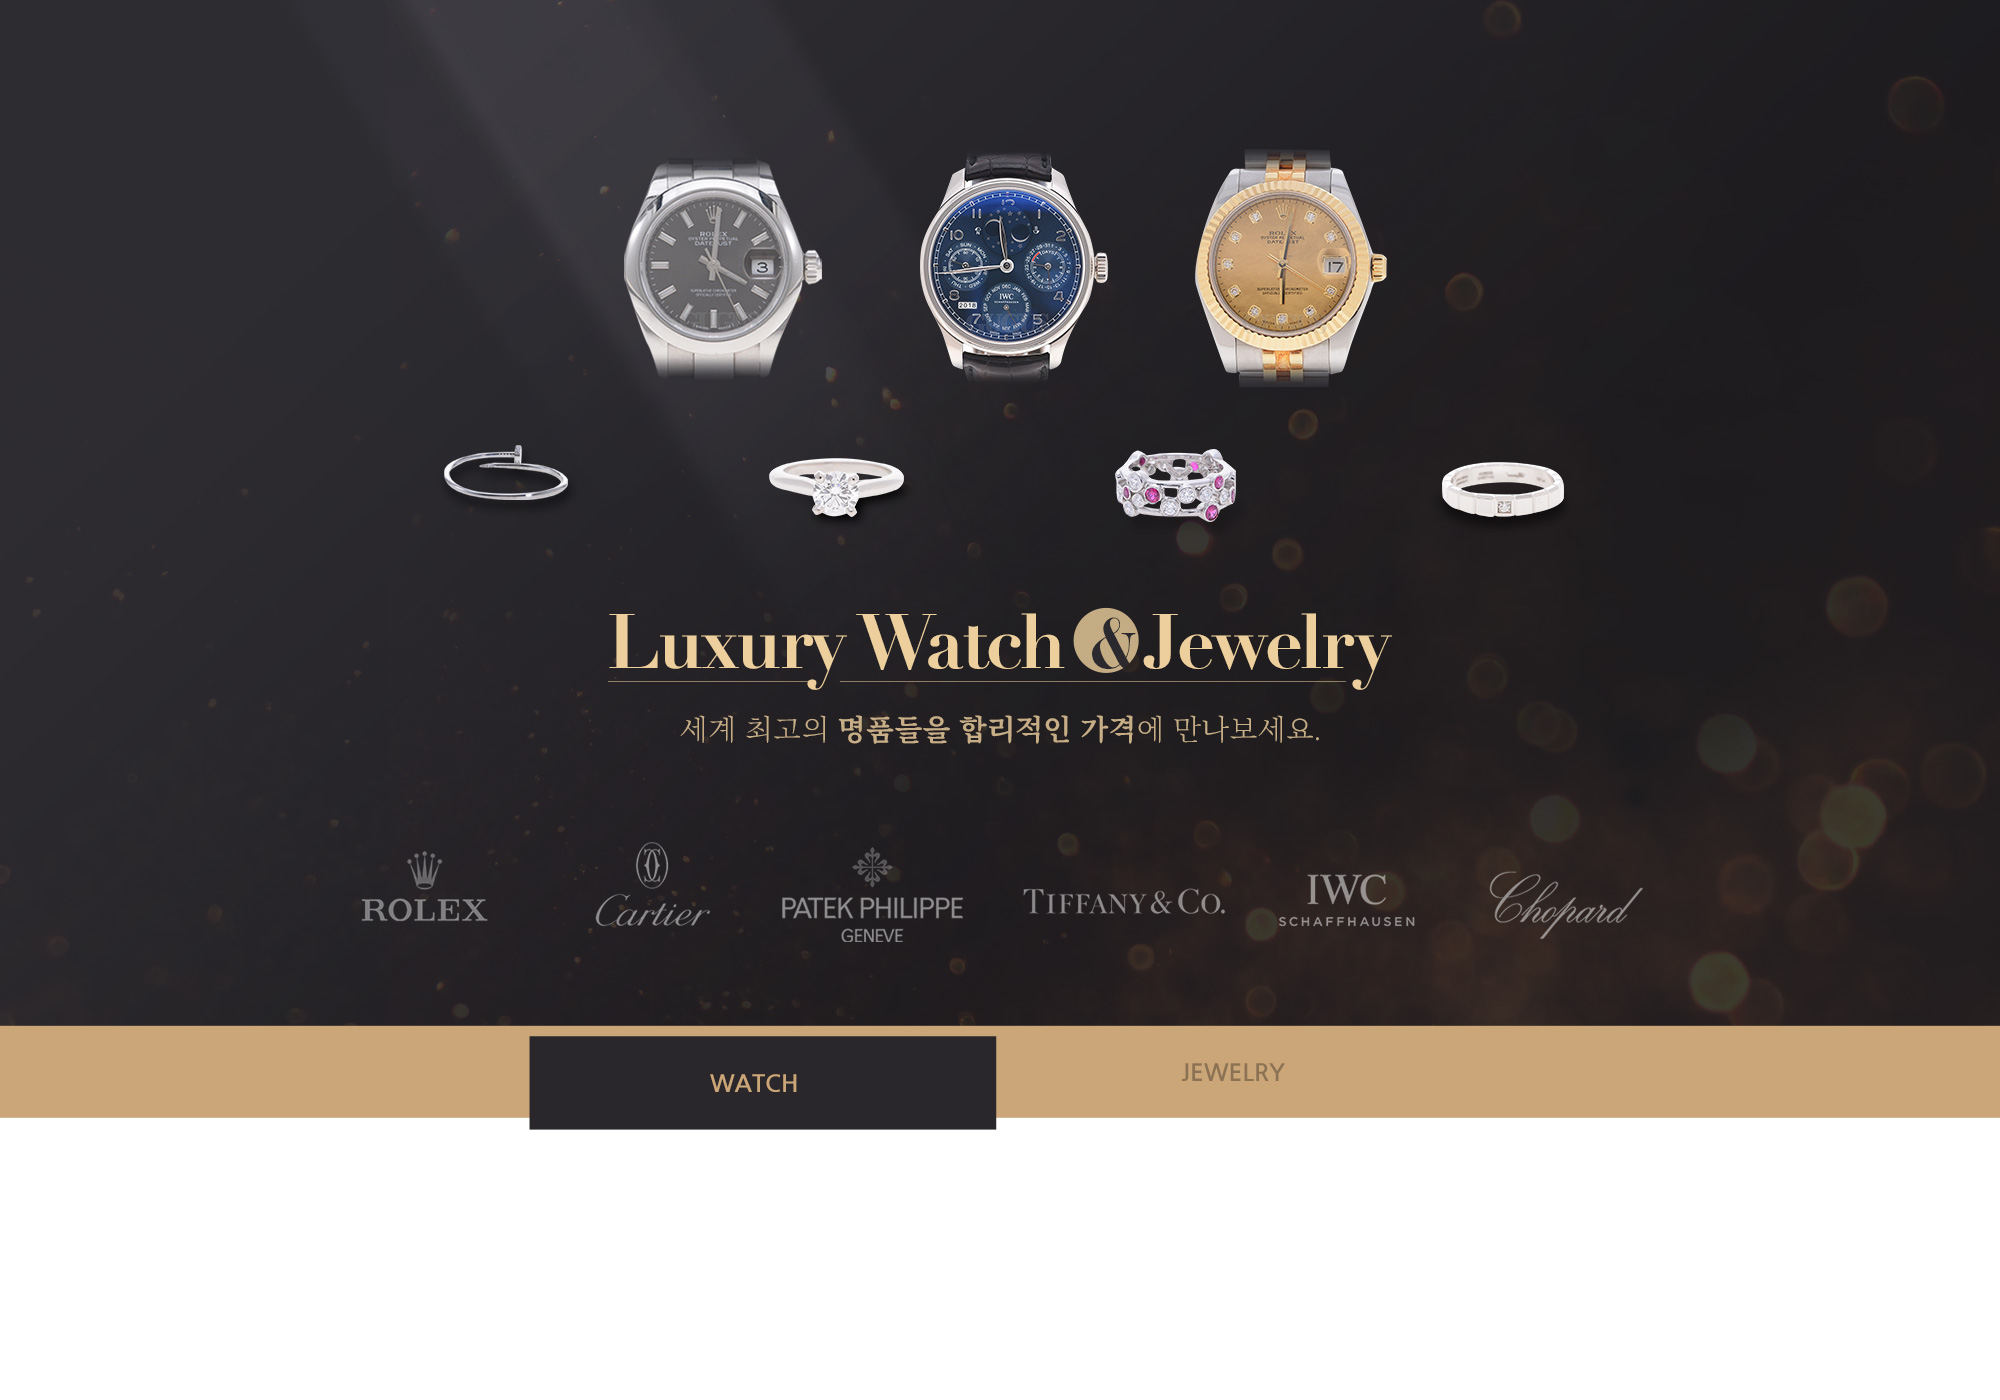 LUXURY WATCH & JEWELRY